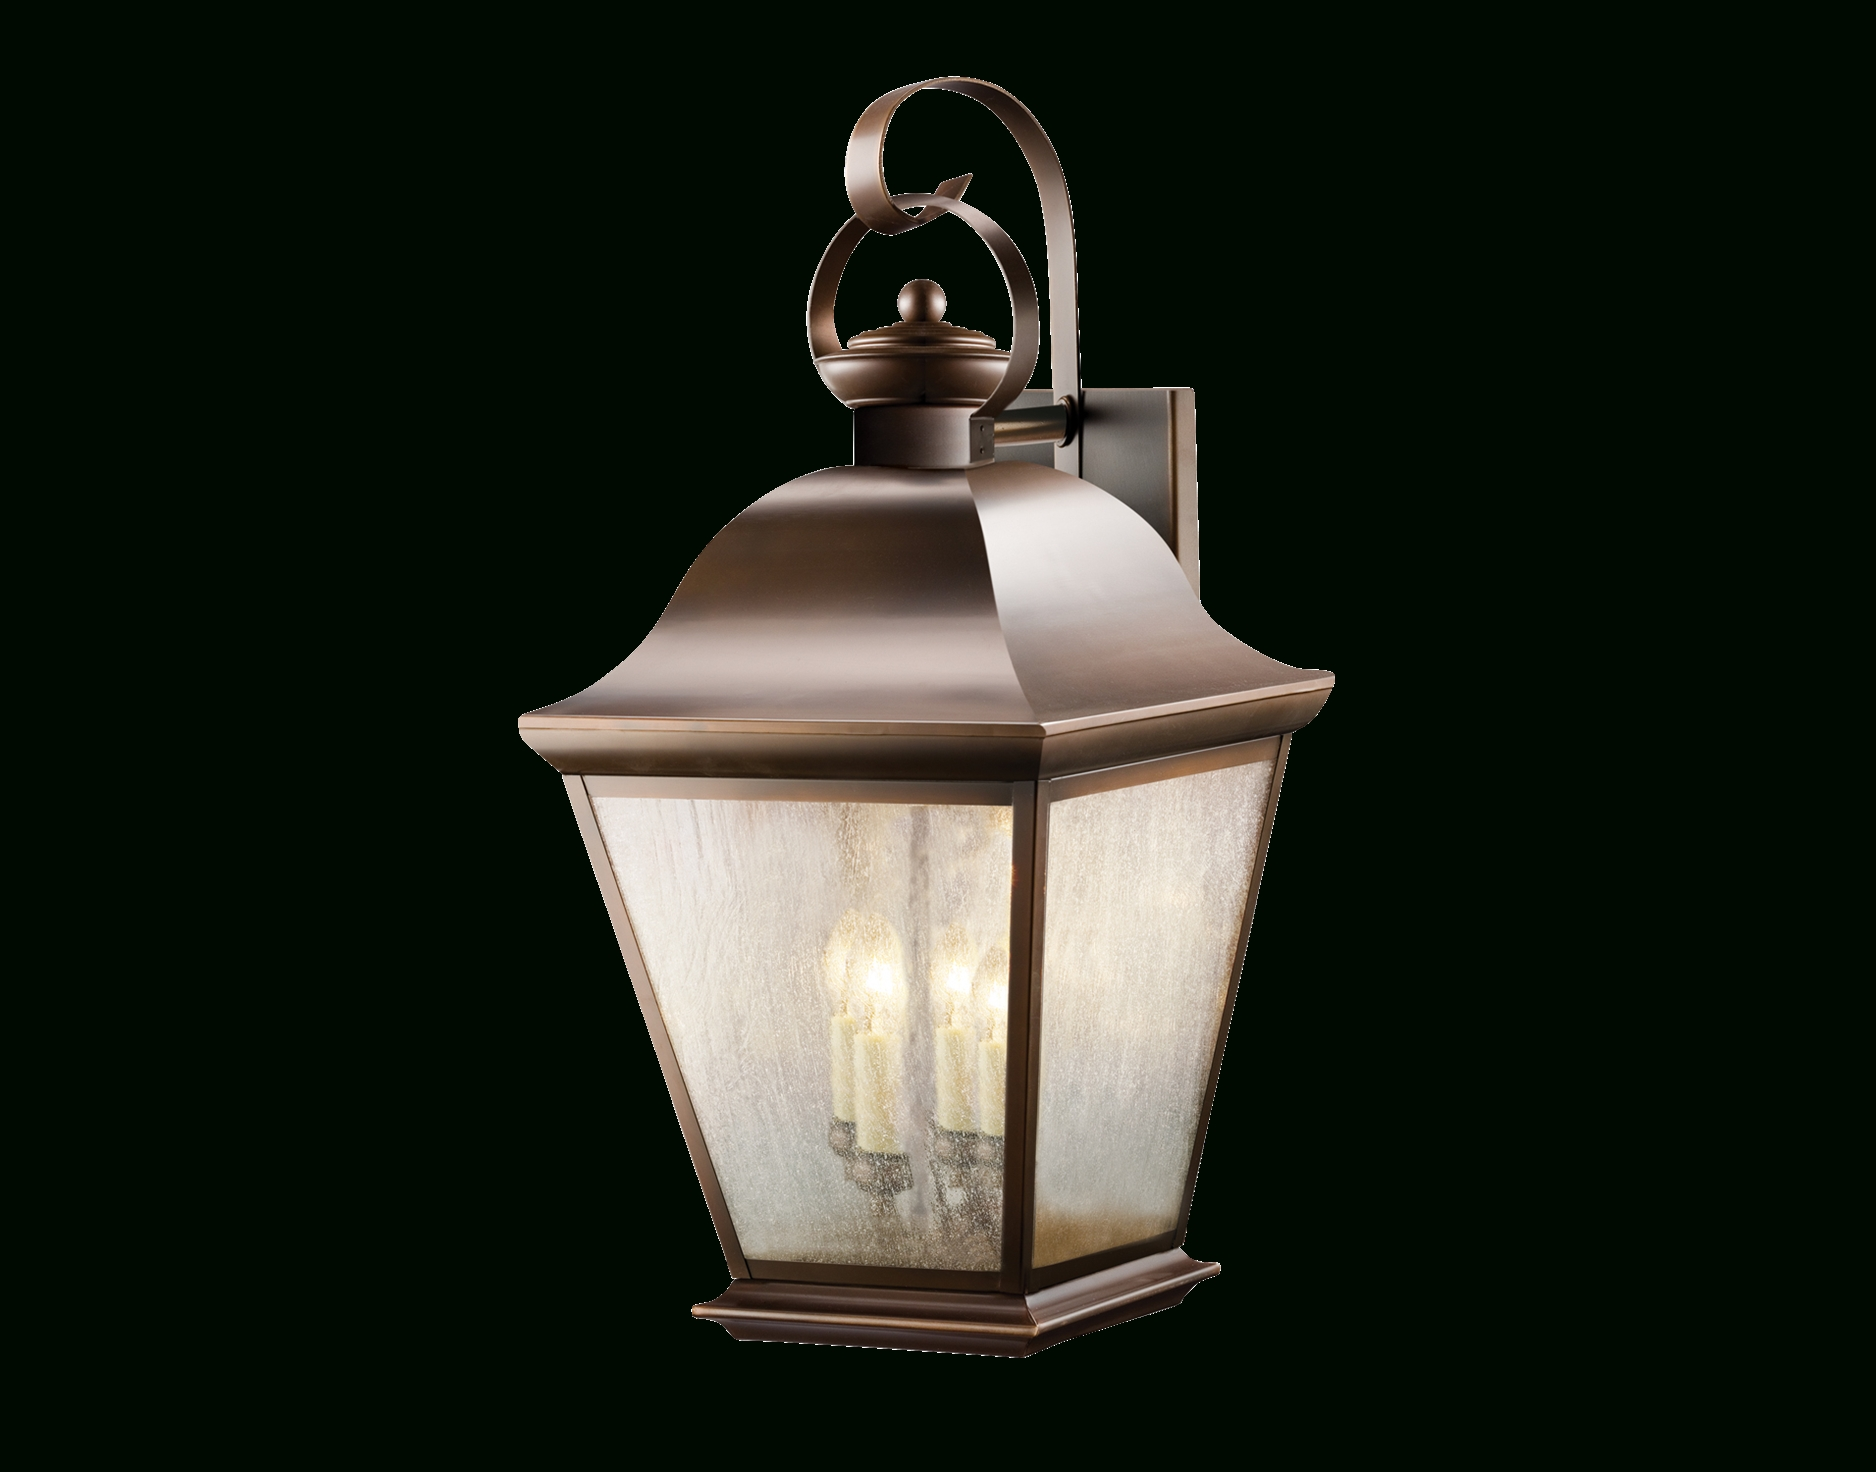 Lite City – Specialists In Home And Outdoor Lights And Lighting Throughout Johannesburg Outdoor Wall Lights (#12 of 15)